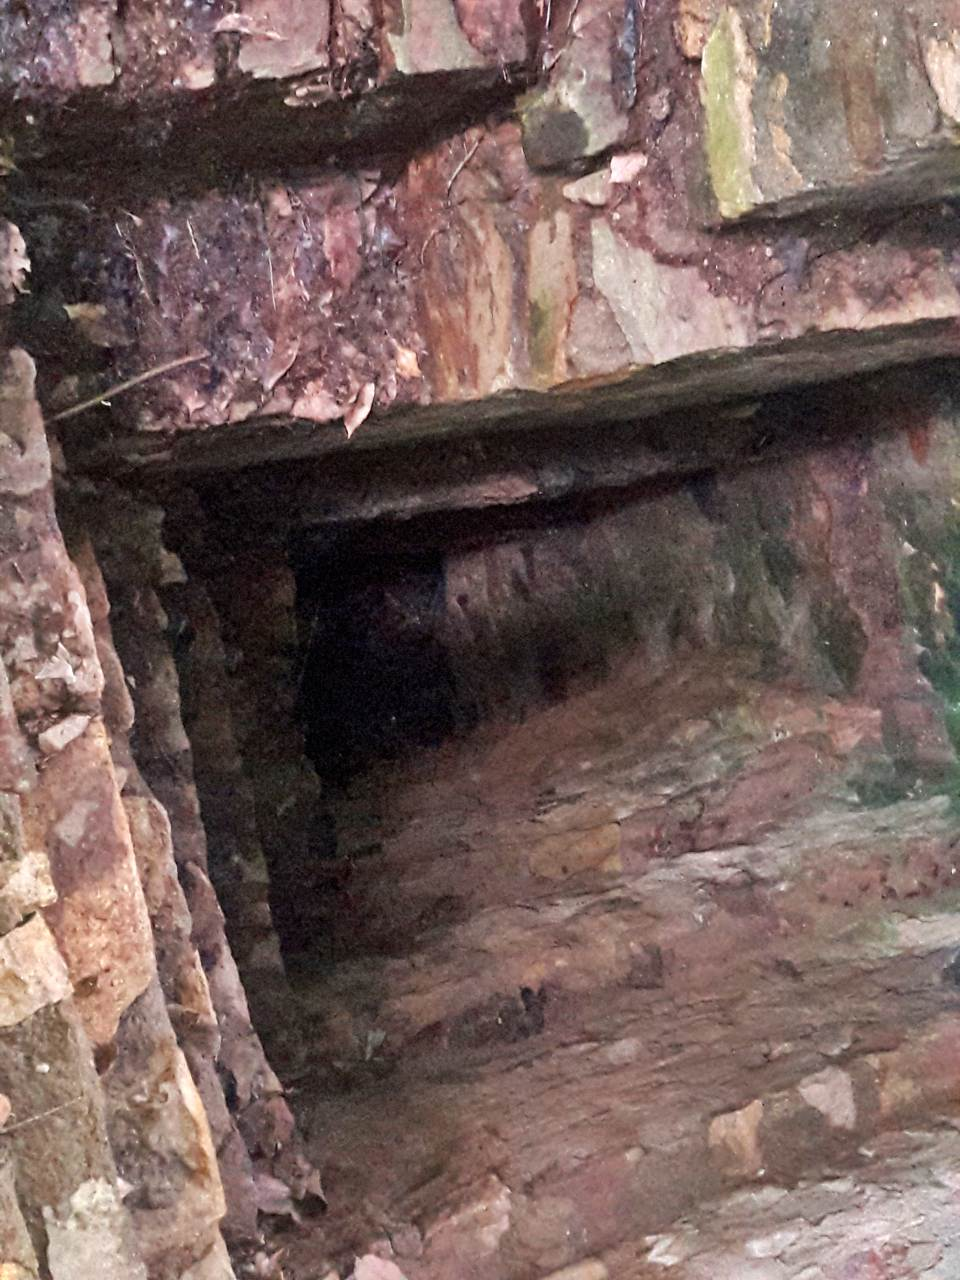 Dorawaka Caves Excavations in the prehistoric Site in middle of a rubber plantation